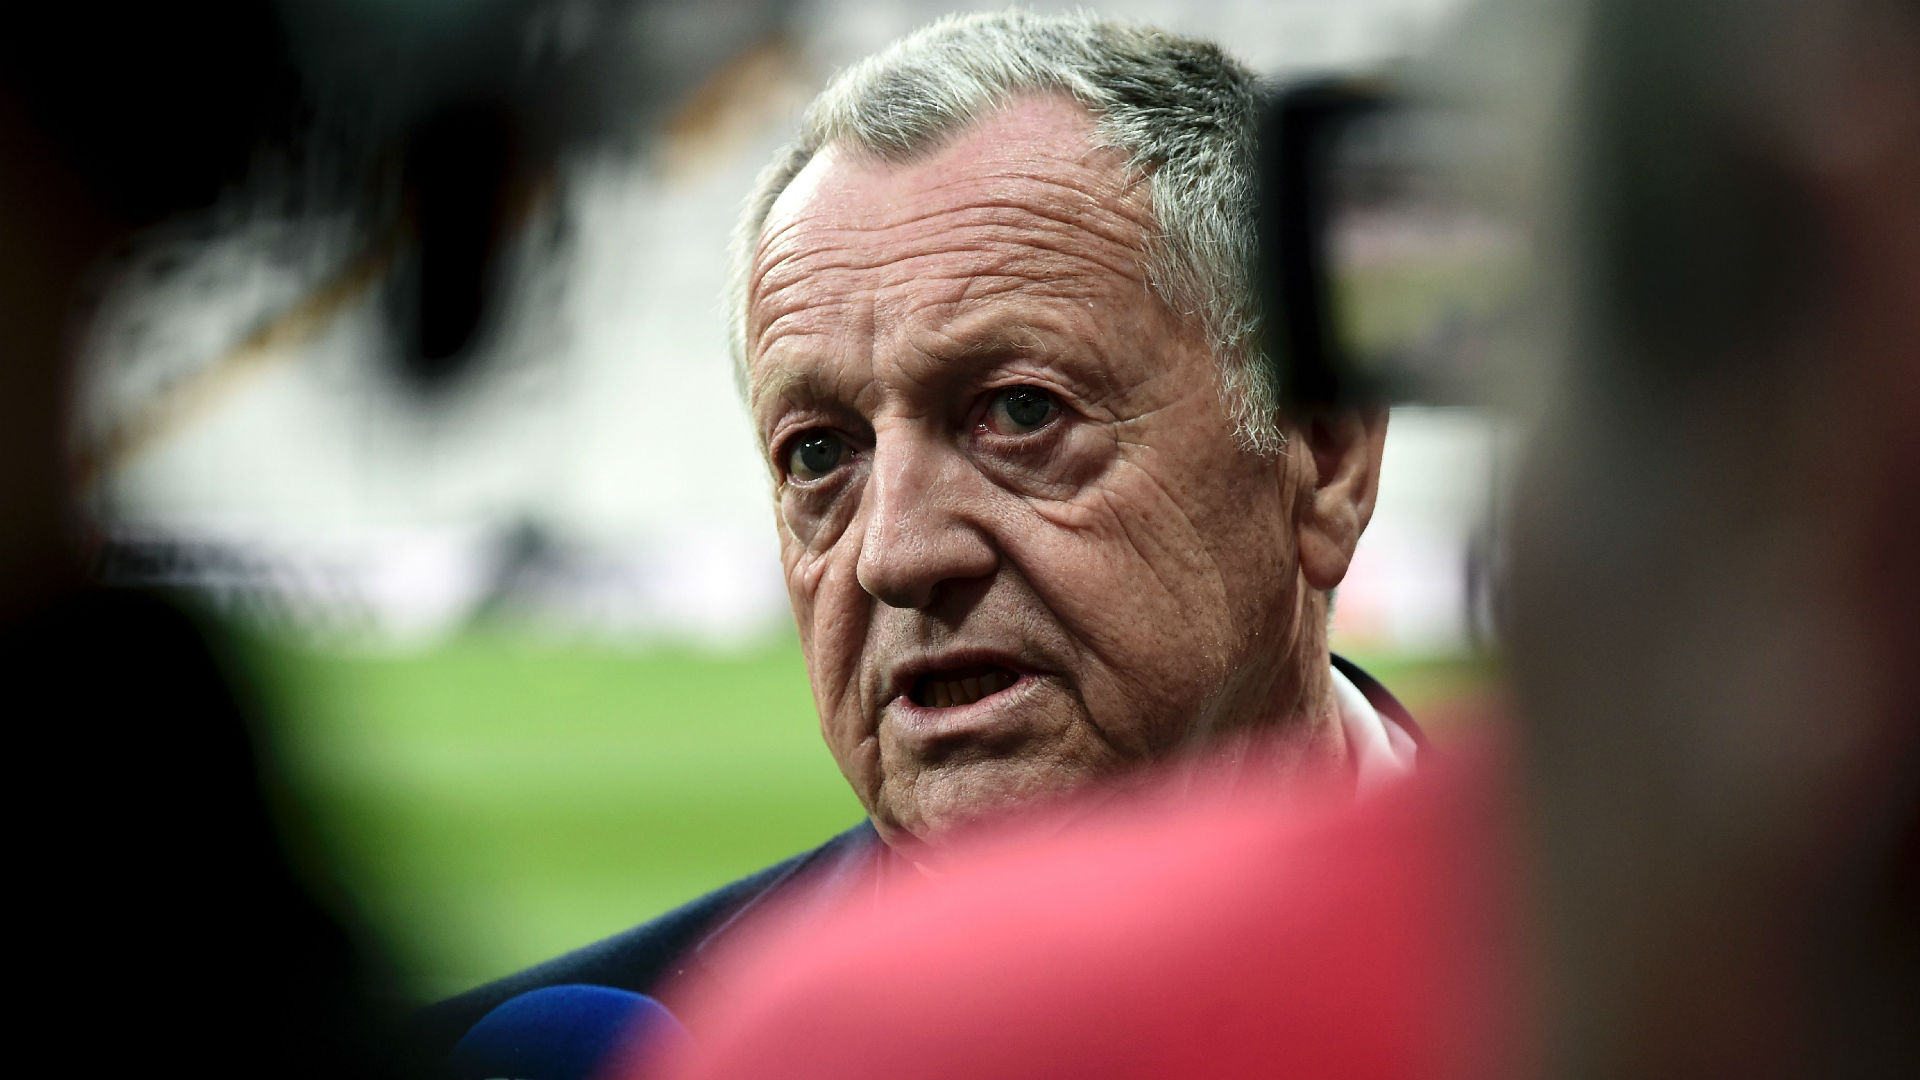 Lyon president Aulas writes letter to French government requesting Ligue 1 season be resumed